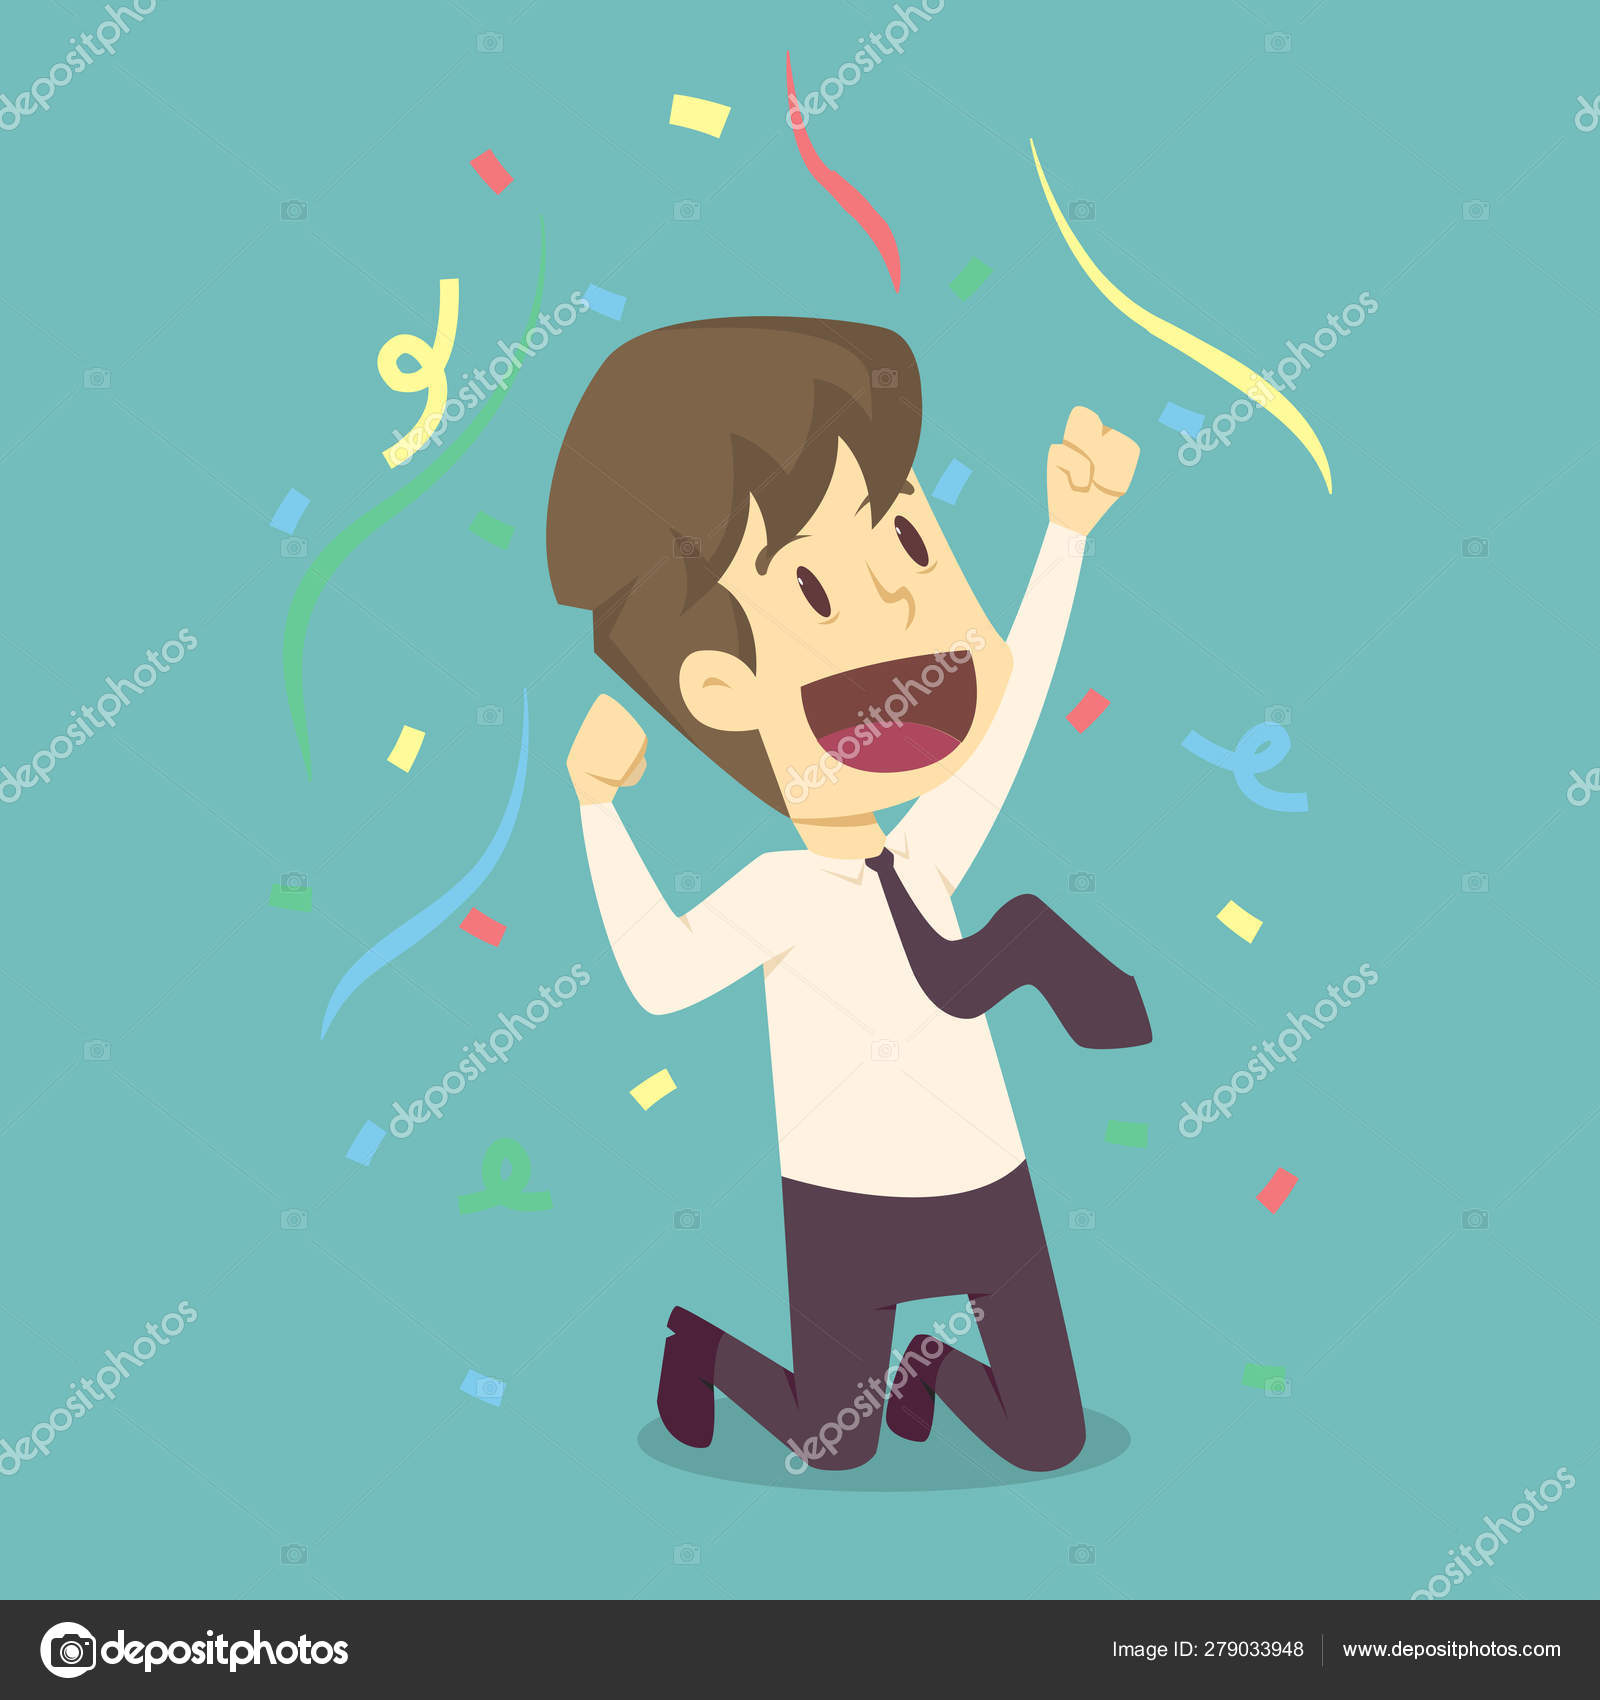 businessman happy in celebration success cartoon of business emp stock vector c doppelganger 52 hotmail com 279033948 businessman happy in celebration success cartoon of business emp stock vector c doppelganger 52 hotmail com 279033948